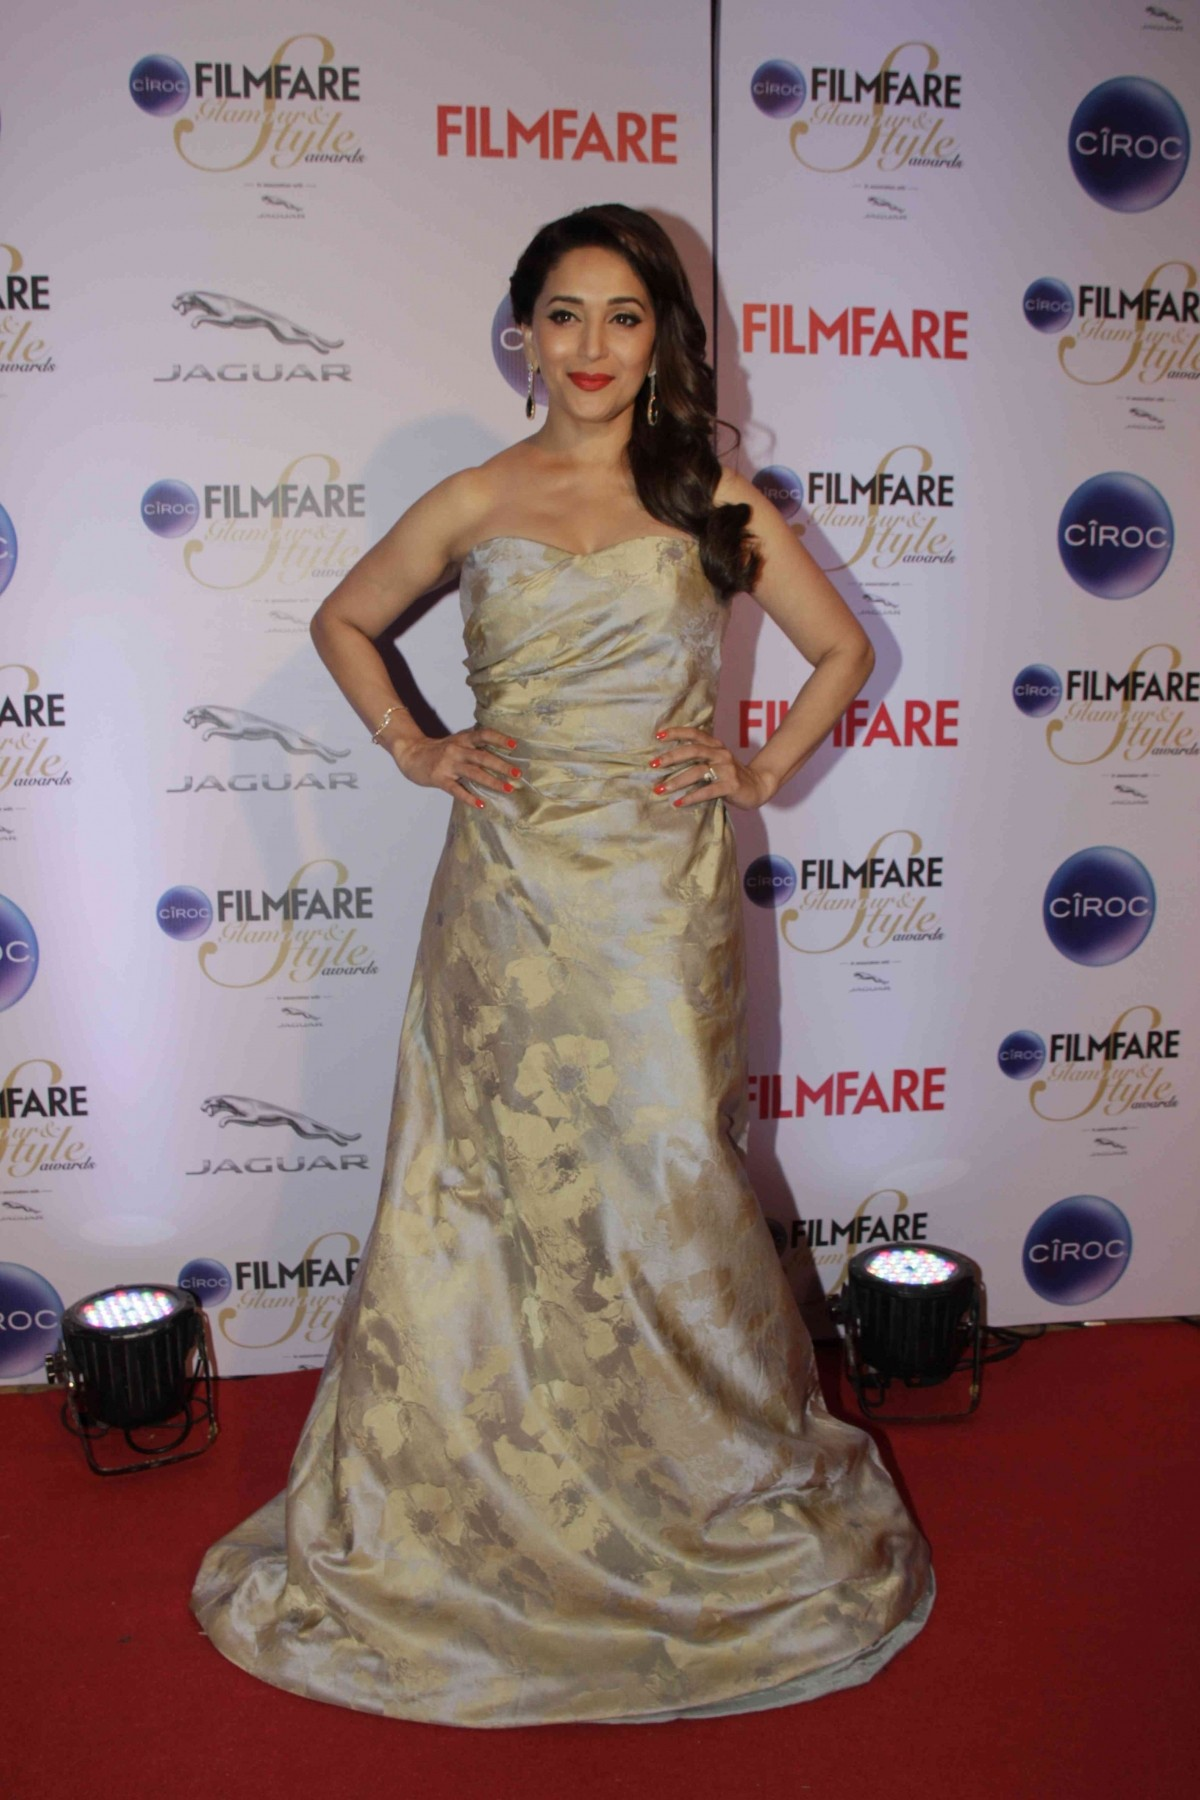 Filmfare Glamour And Style Awards 2015: Sonam Kapoor, Shruti Haasan and Other Worst Dressed Celebs